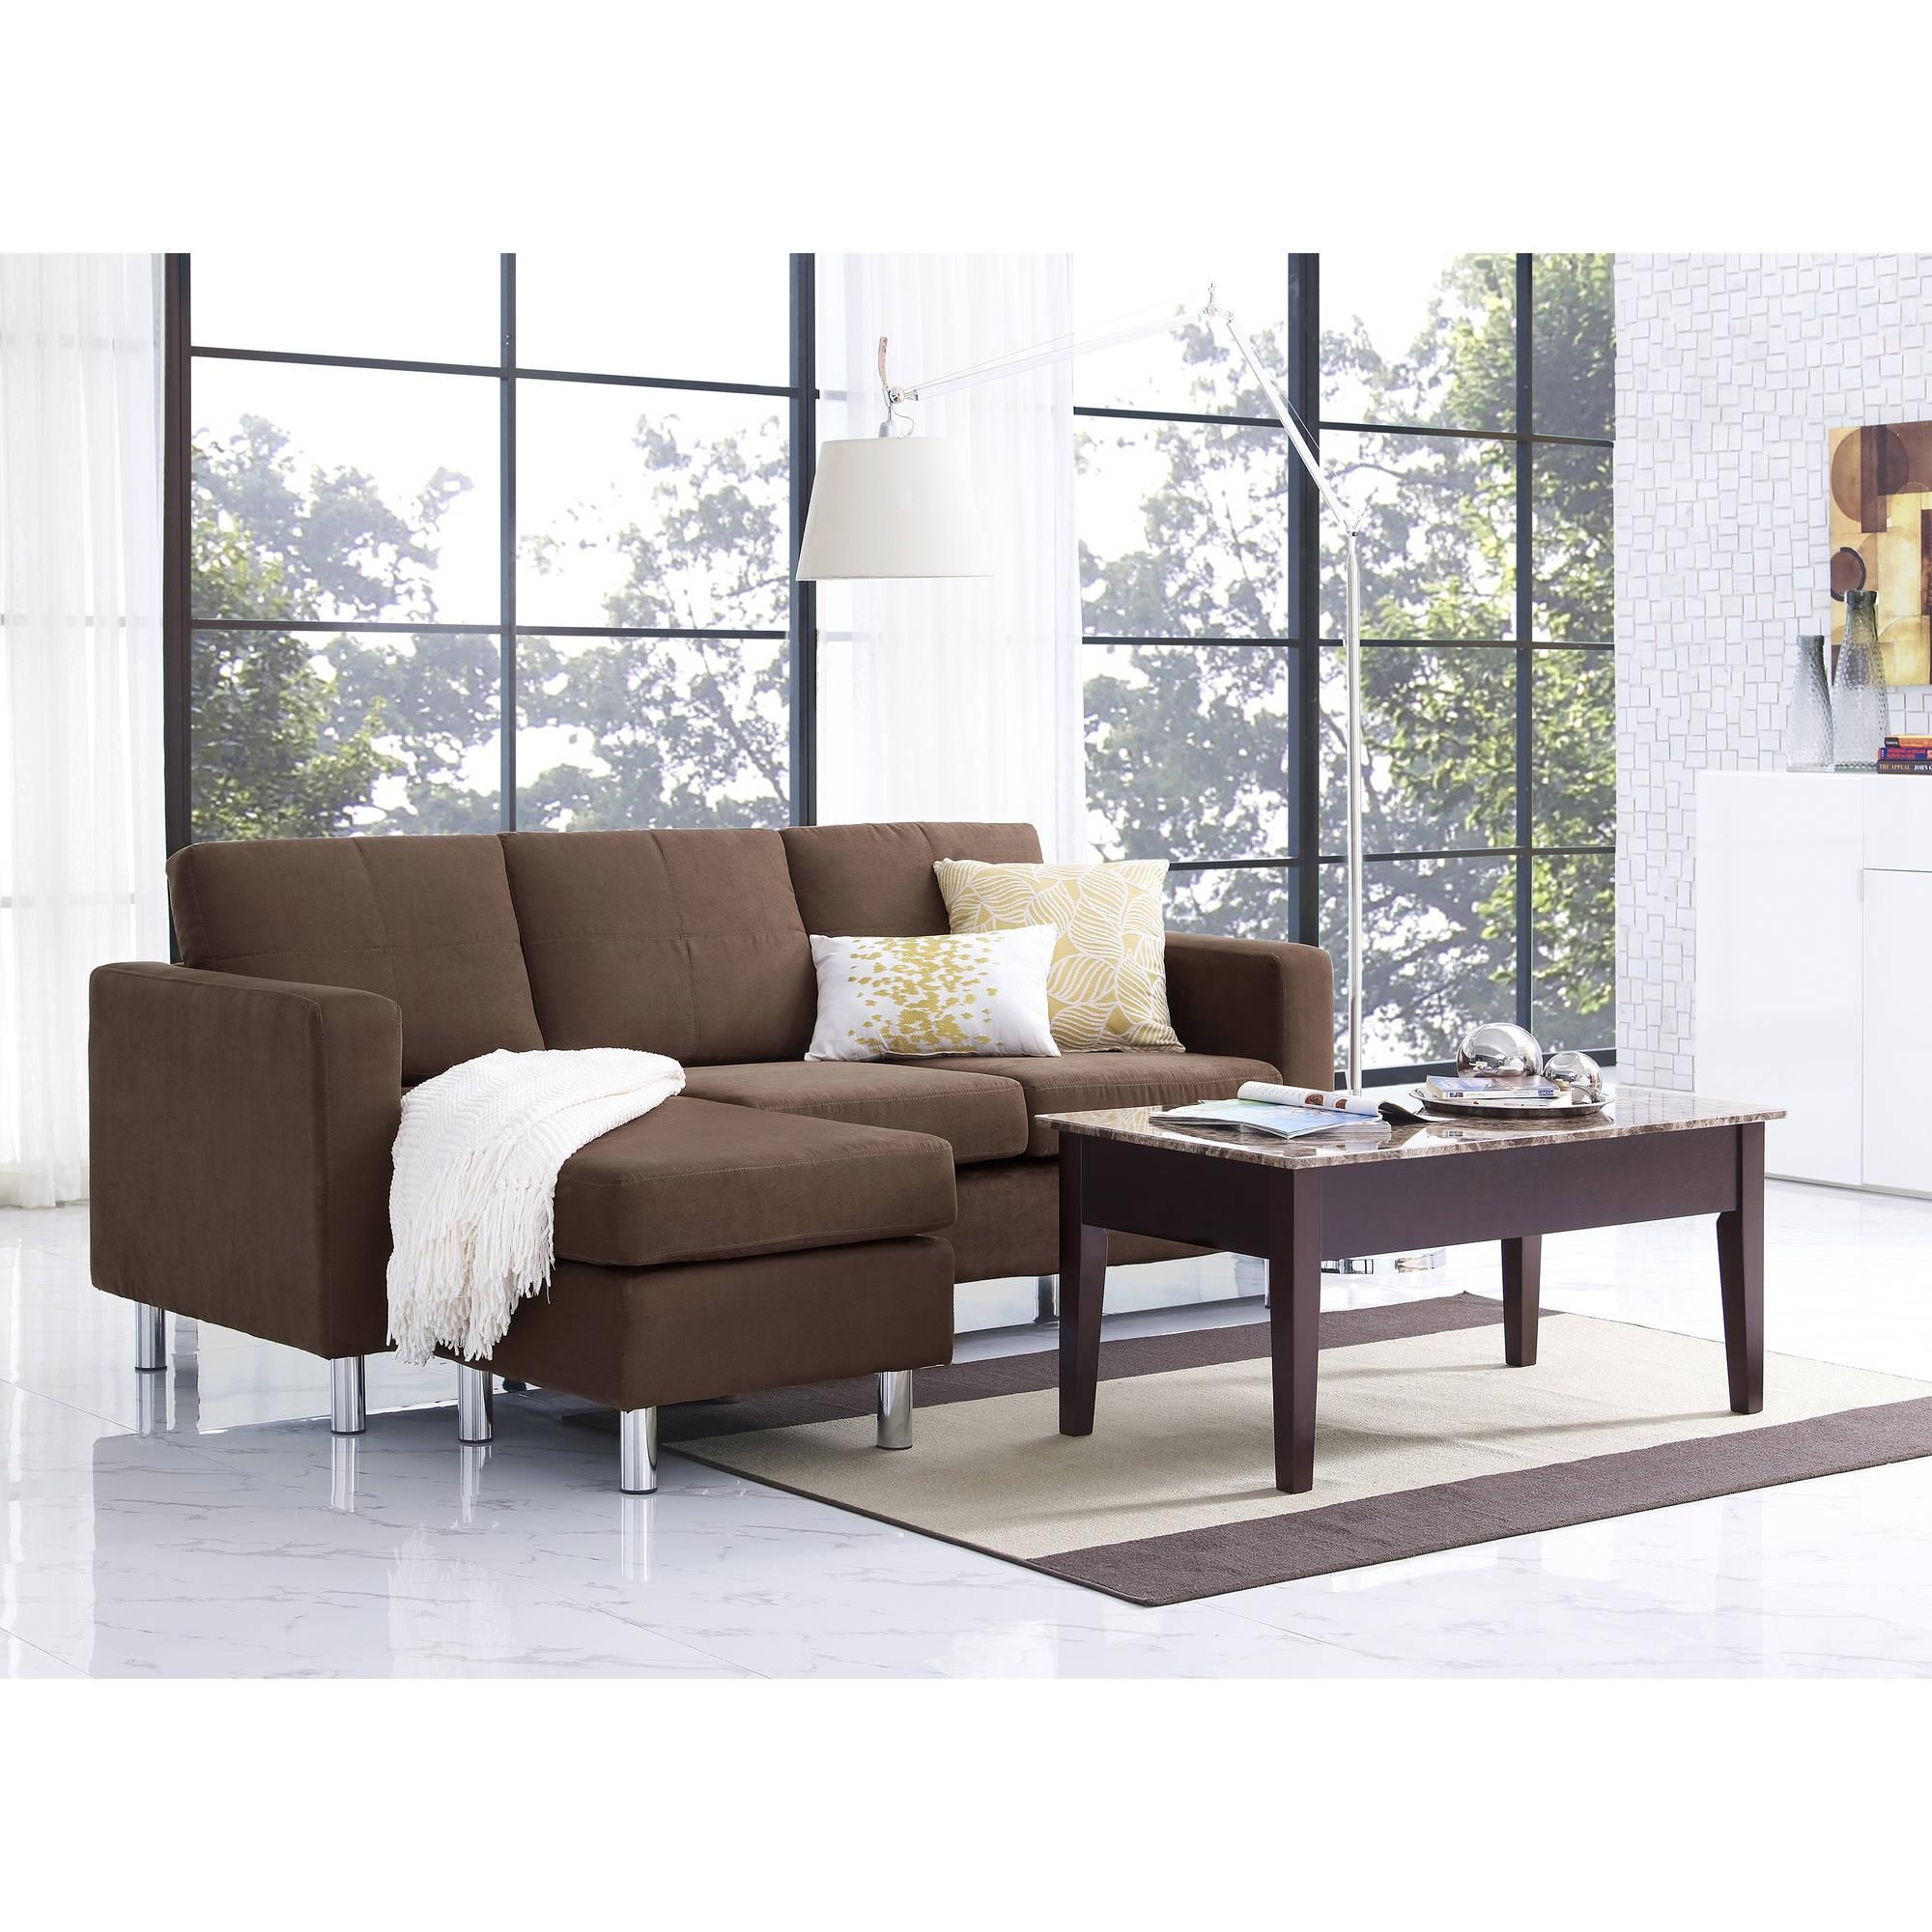 Dorel Living Small Spaces Configurable Sectional Sofa, Multiple Within Sectional Small Spaces (Image 9 of 20)